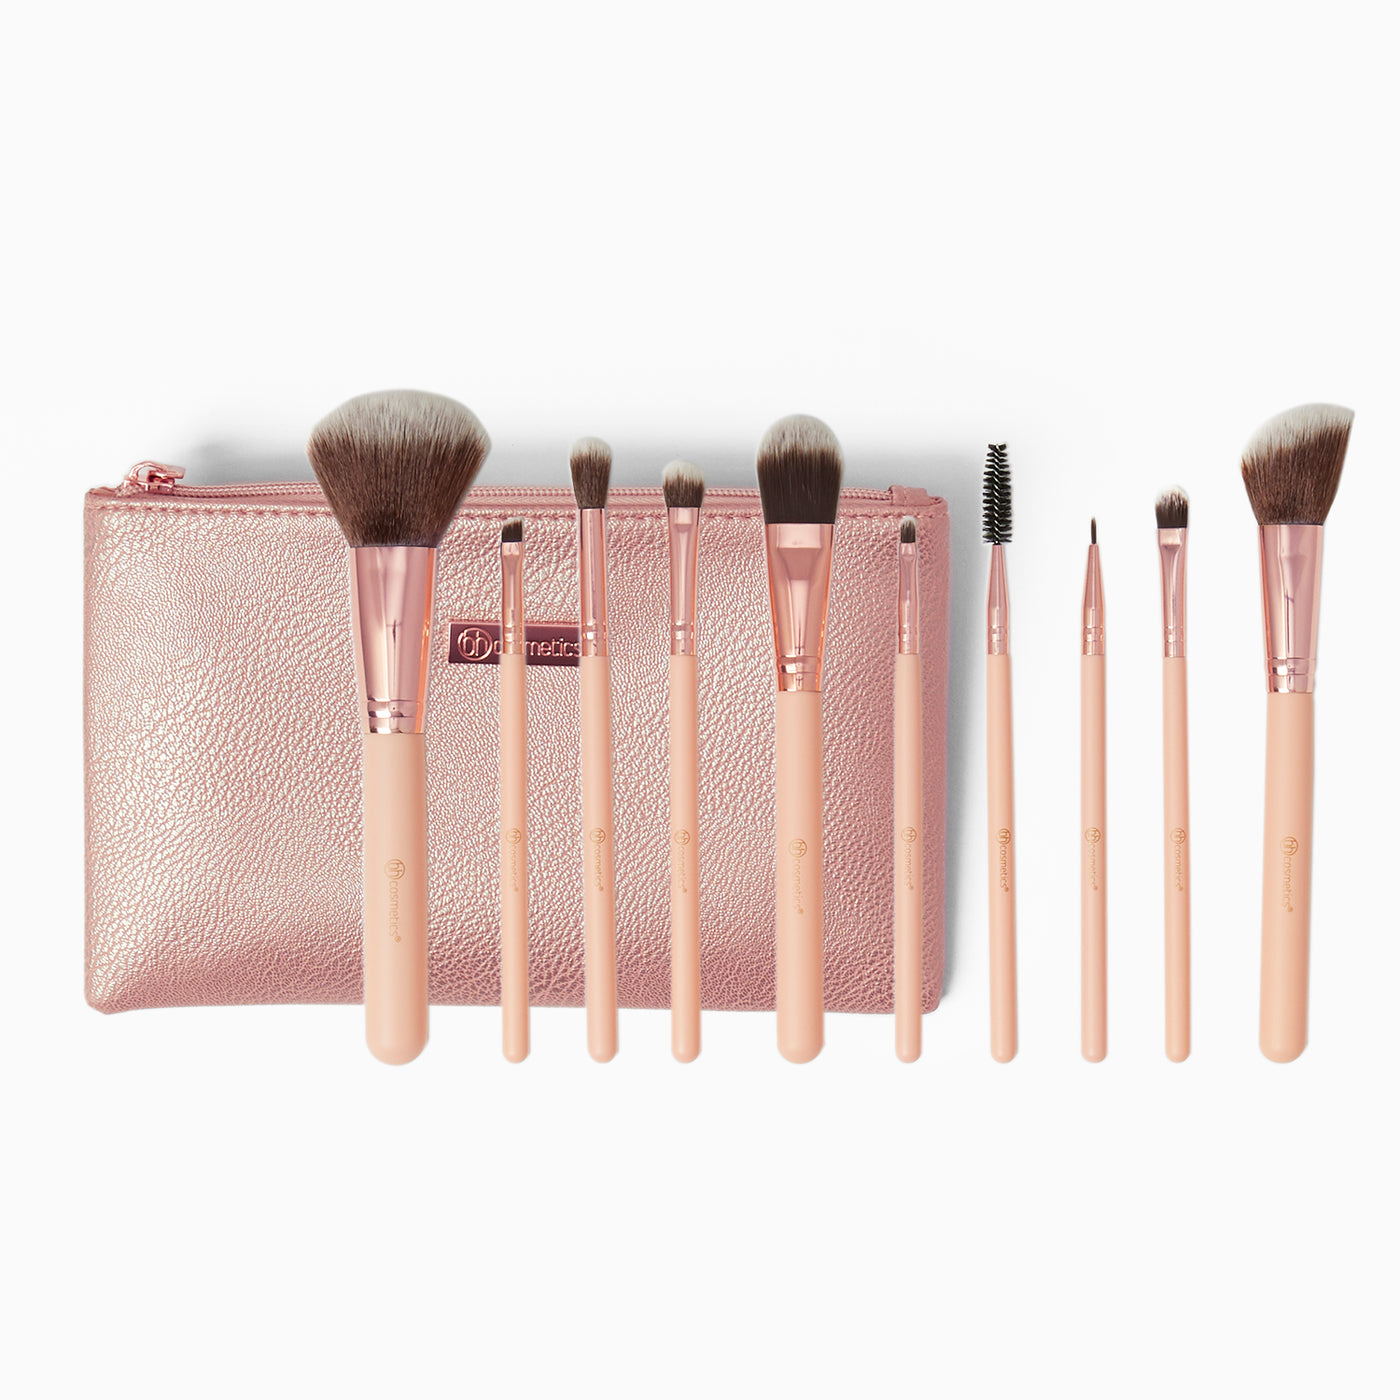 30e32cab28a4 BH Cosmetics Brush Set with Cosmetic Bag - Pretty in Pink - 10pc ...